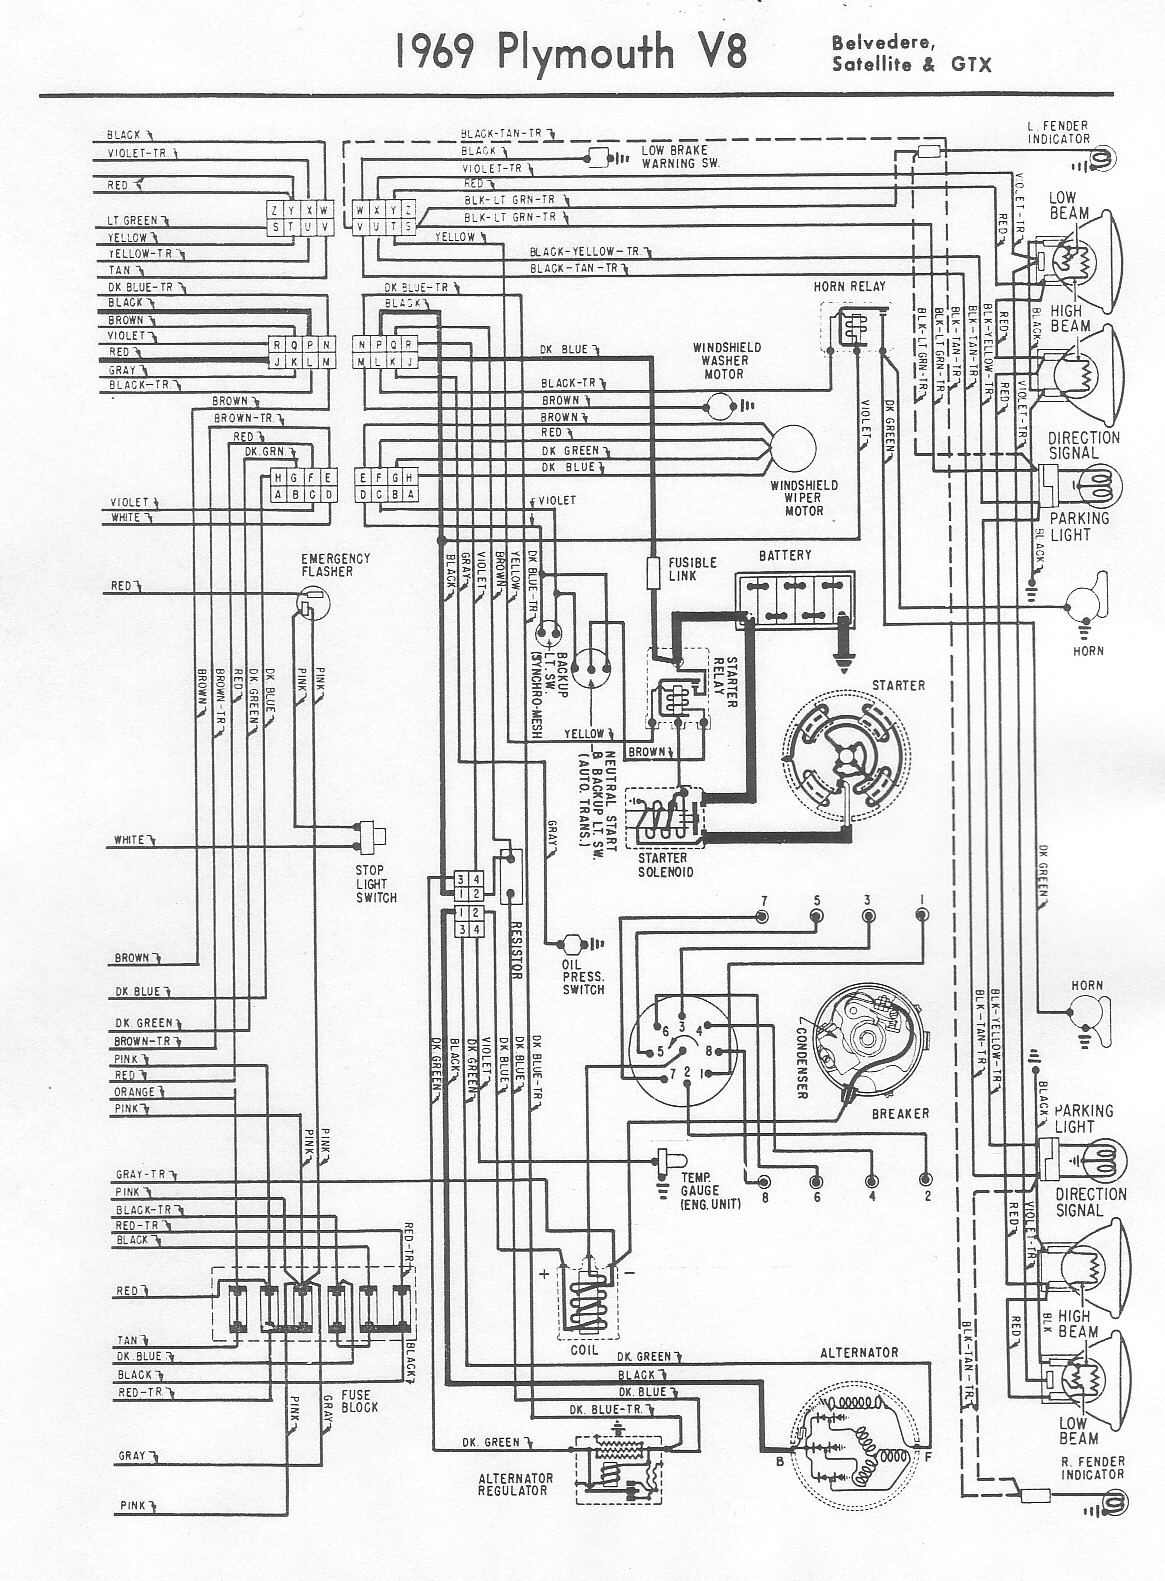 69BelvedereGTXSatelliteRoadRunnerB 1970 plymouth wiring diagram 1970 wiring diagrams instruction 1954 plymouth belvedere wiring diagram at crackthecode.co